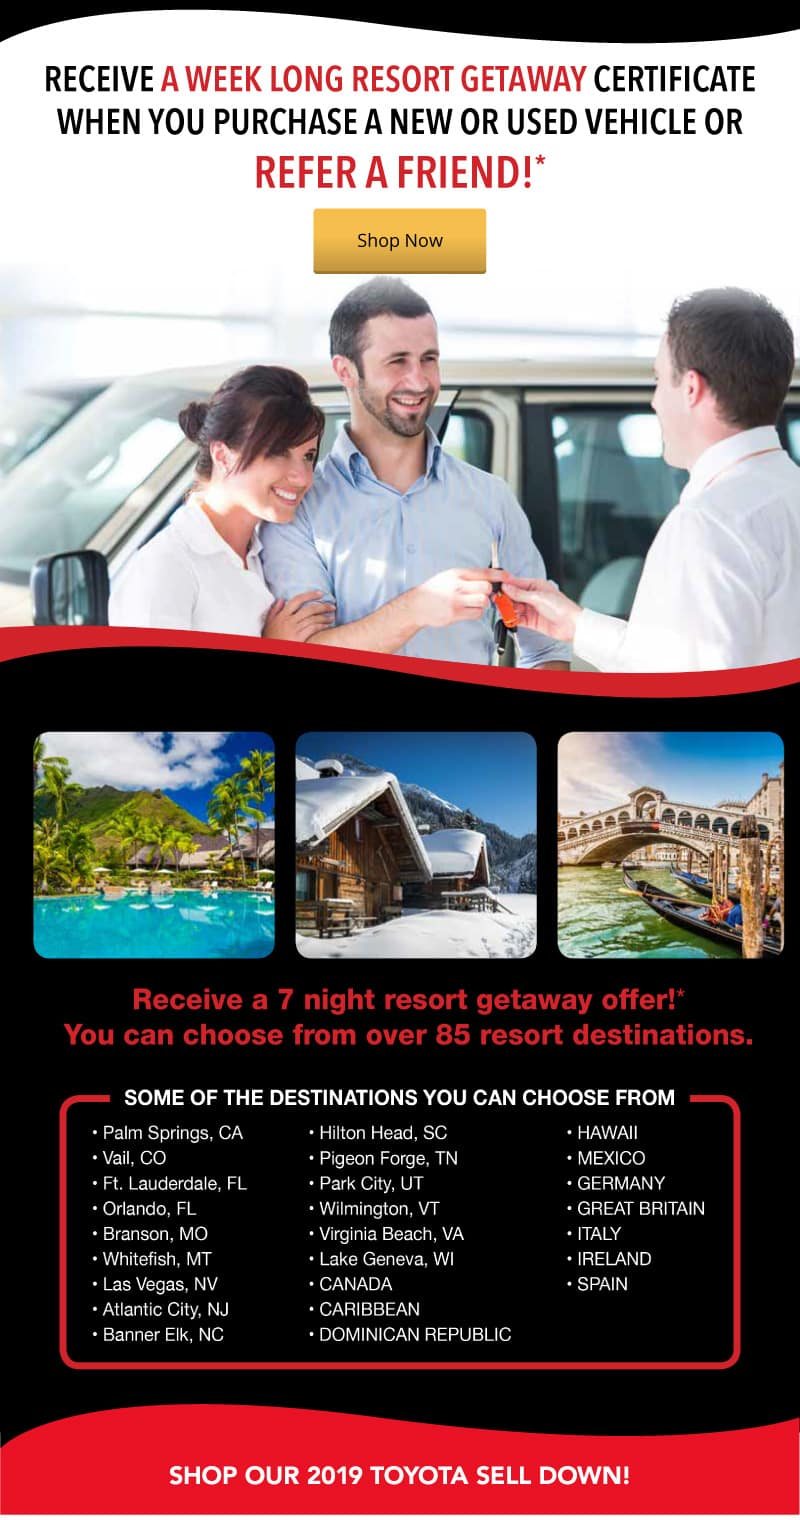 Receive a week long resort getaway certificate when you purchase a new or used vehicle or refer a friend!*